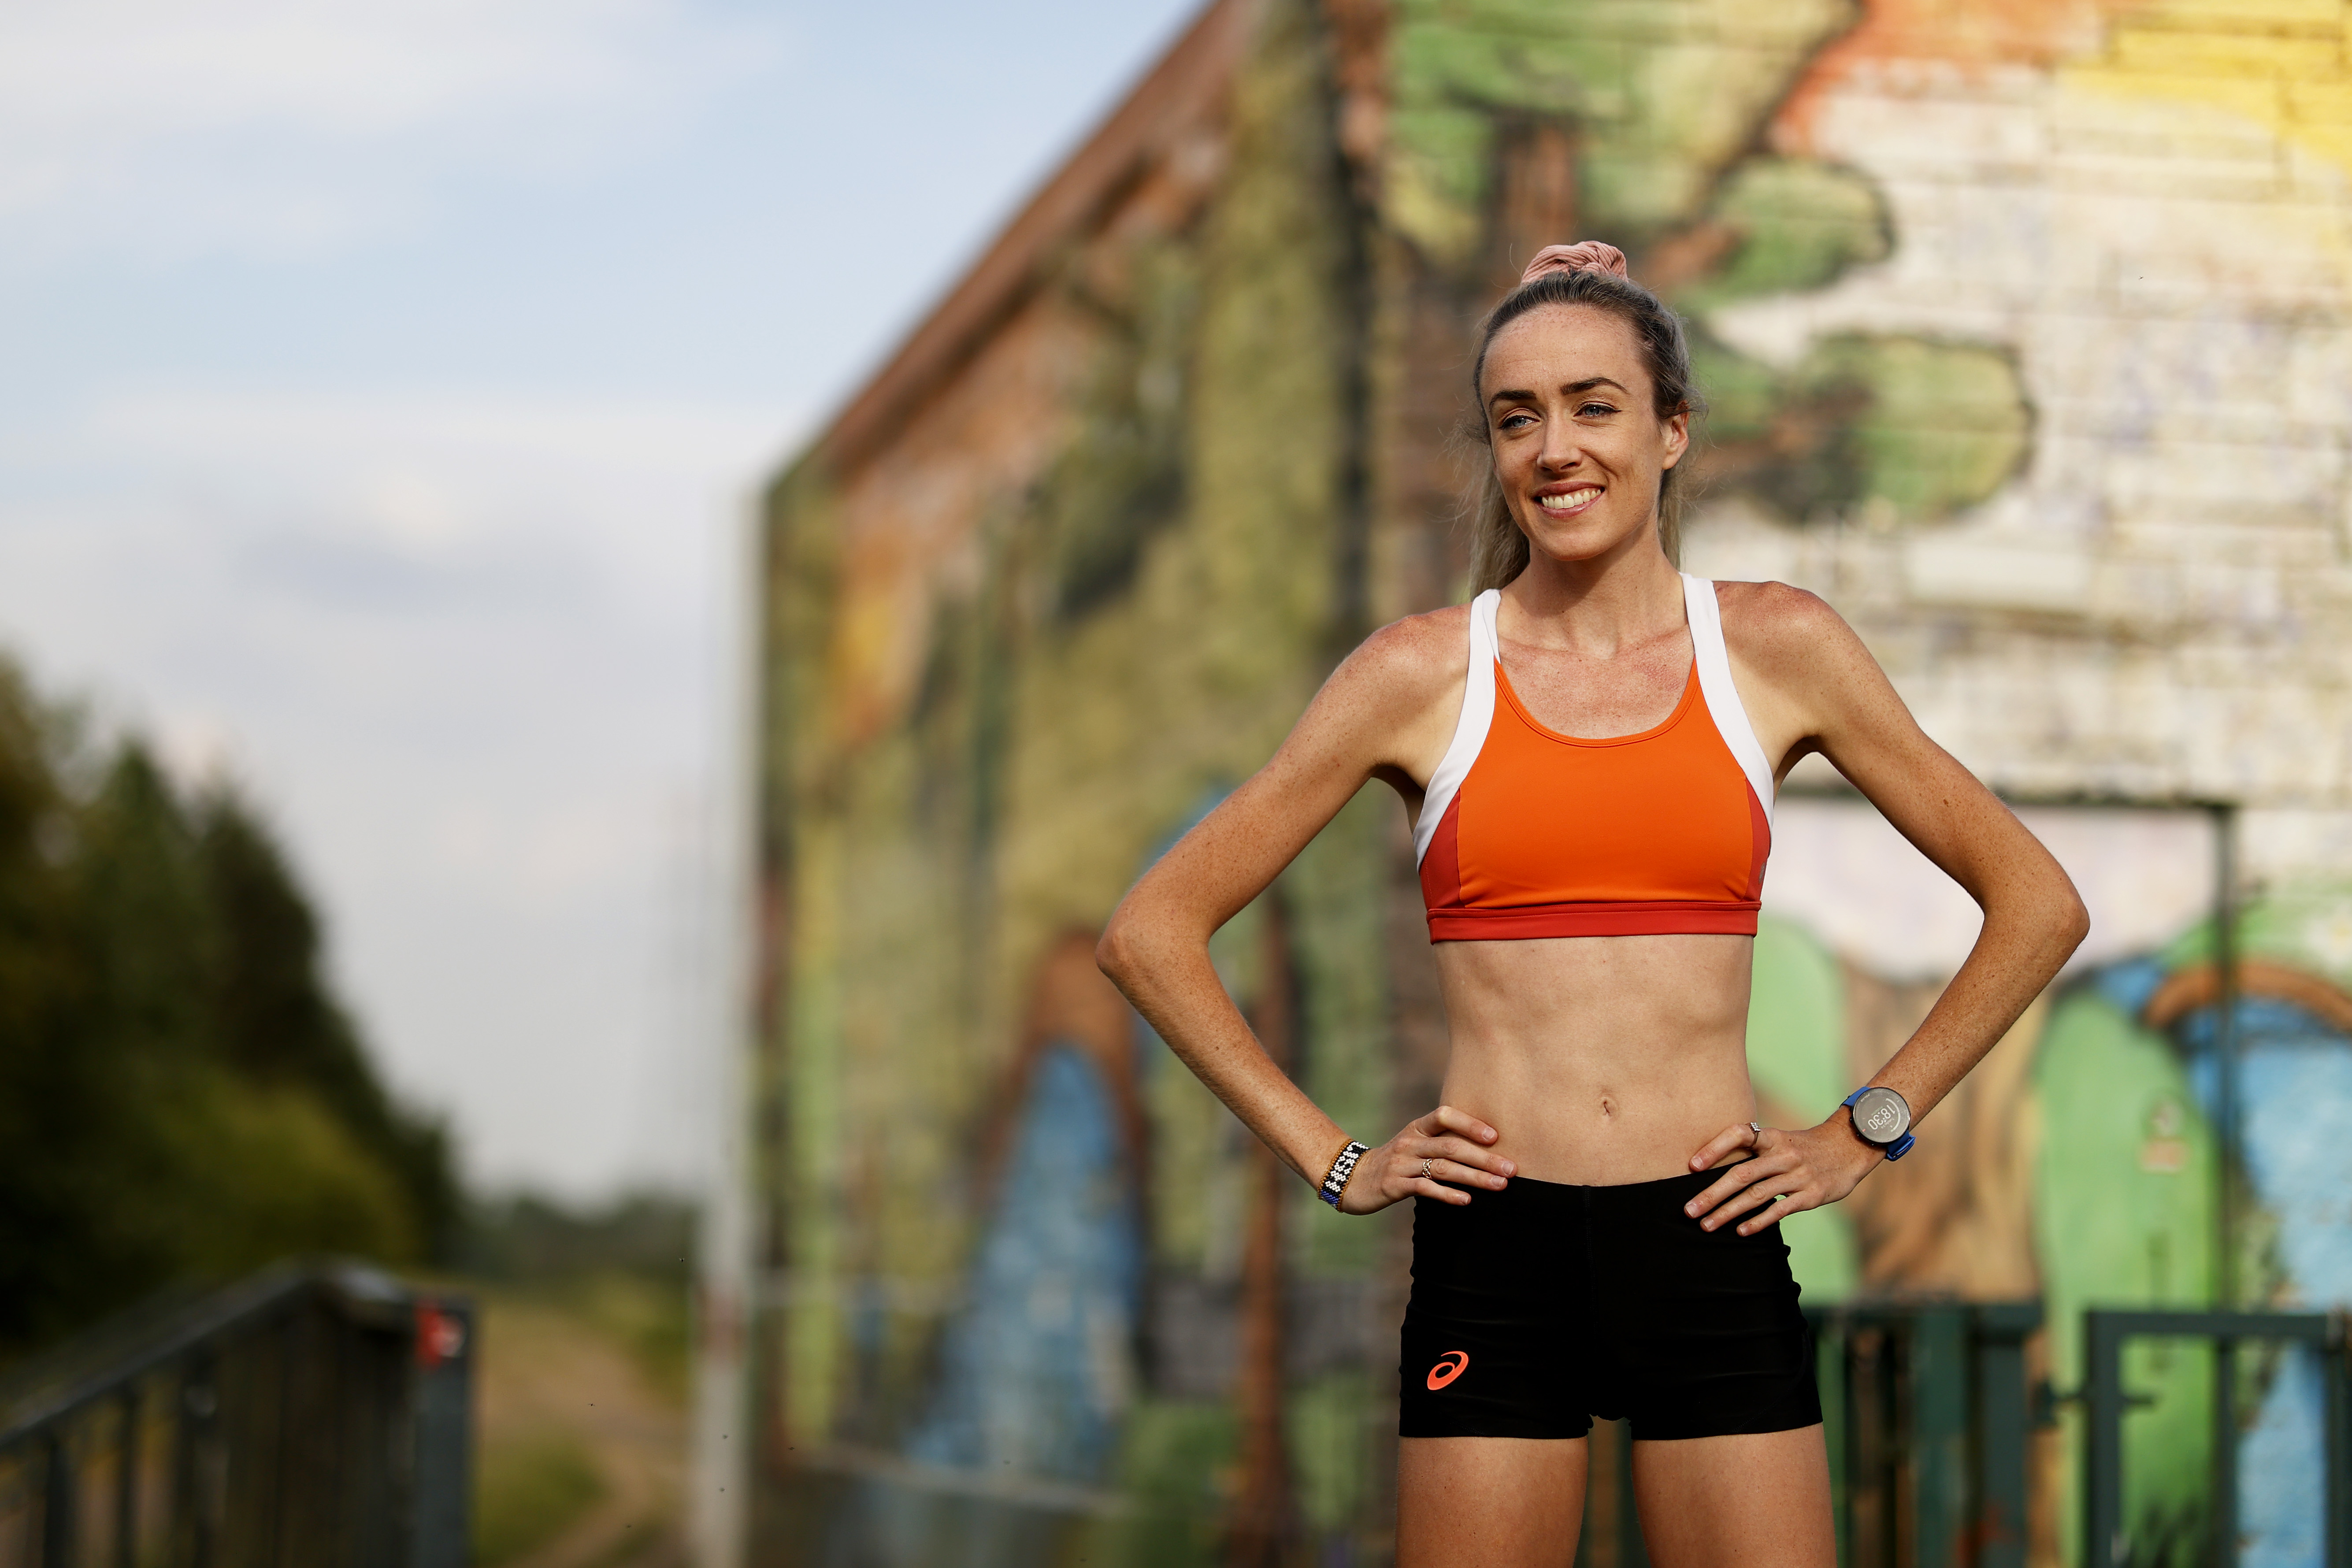 MANCHESTER, ENGLAND - JUNE 02: Great Britain middle-distance runner Eilish McColgan poses for a portrait after her training run in Didsbury on June 02, 2020 in Manchester, England. (Photo by Clive Brunskill/Getty Images)